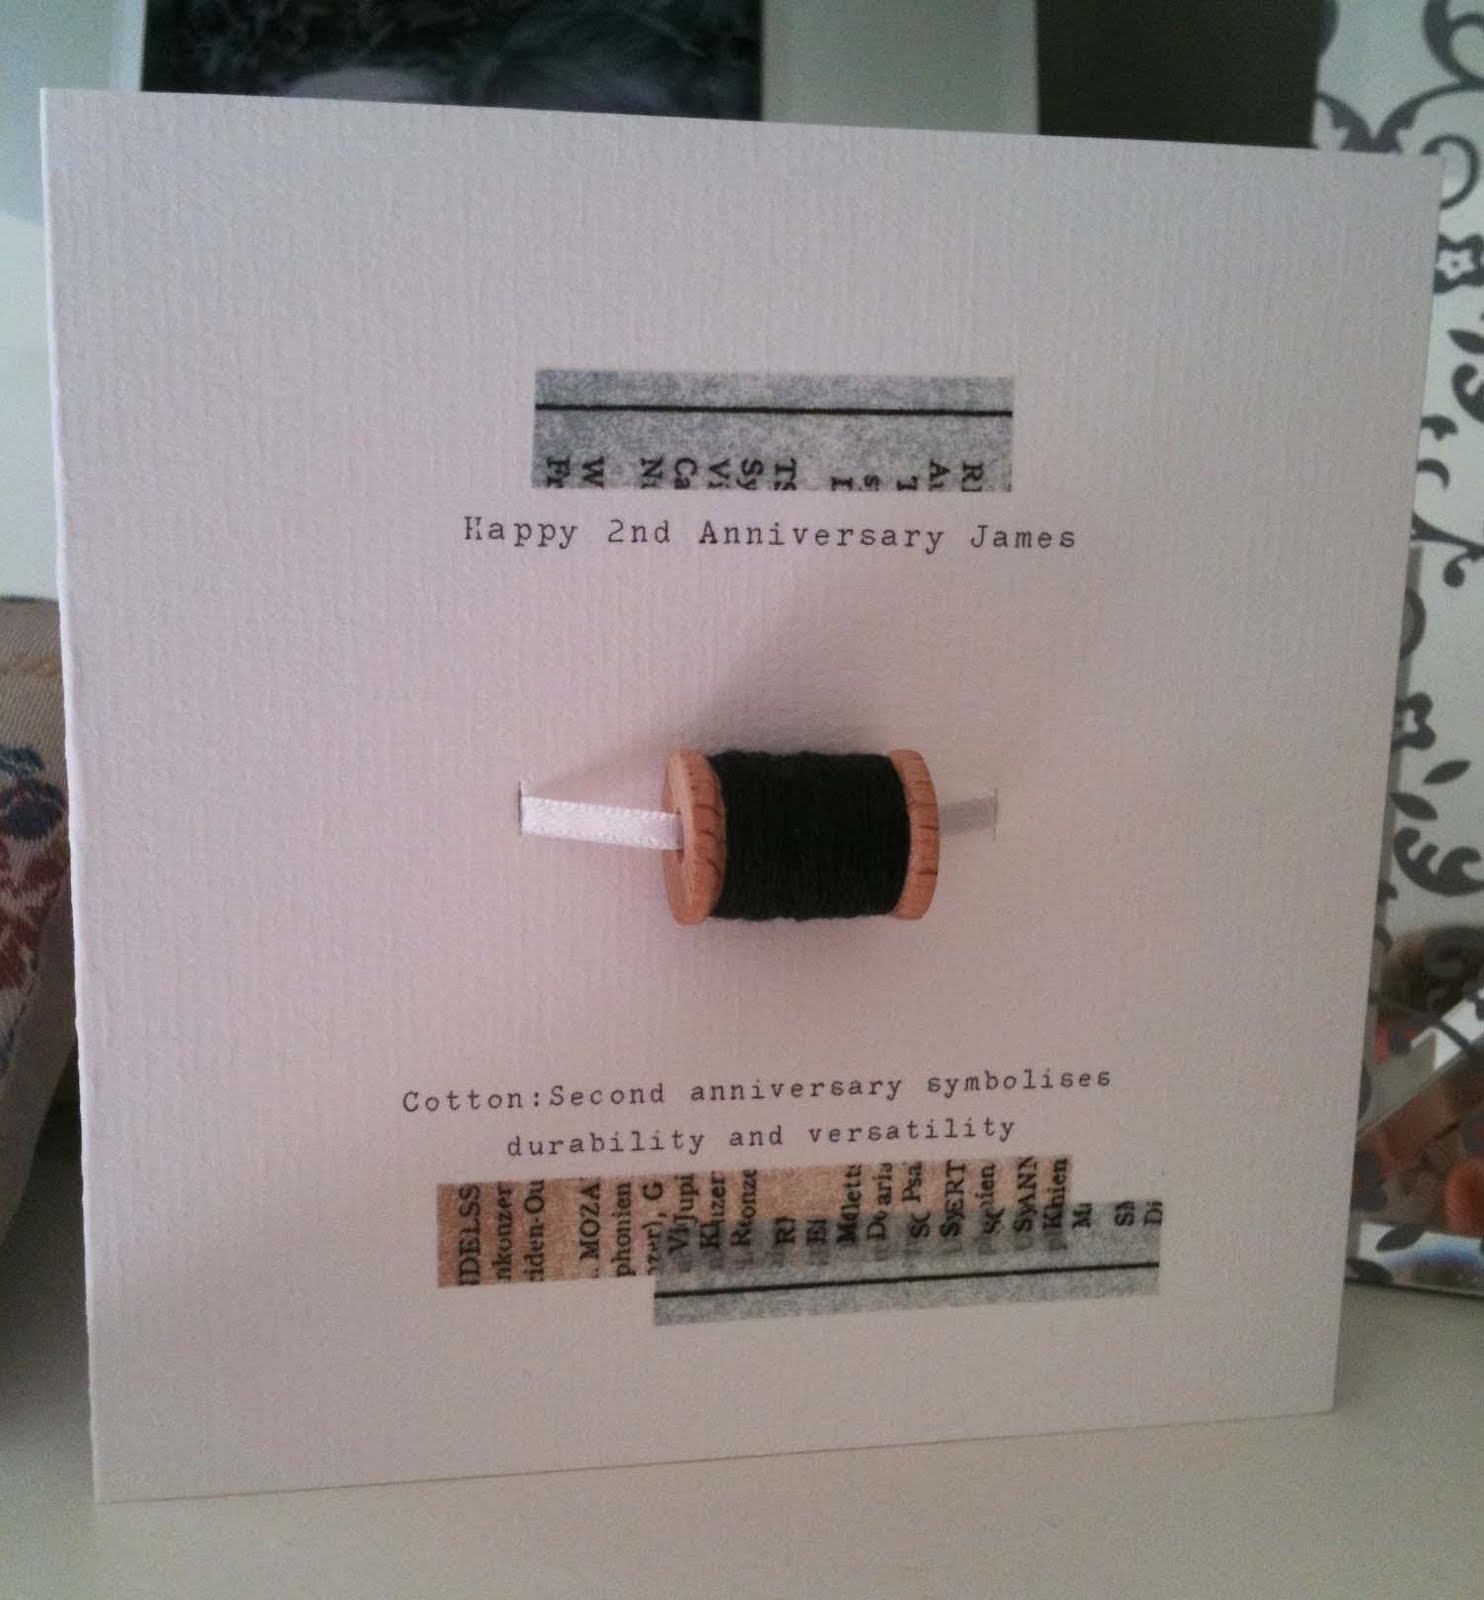 Gifts For Second Wedding Anniversary: Button Box Cards Ltd: 2nd Wedding Anniversary Card